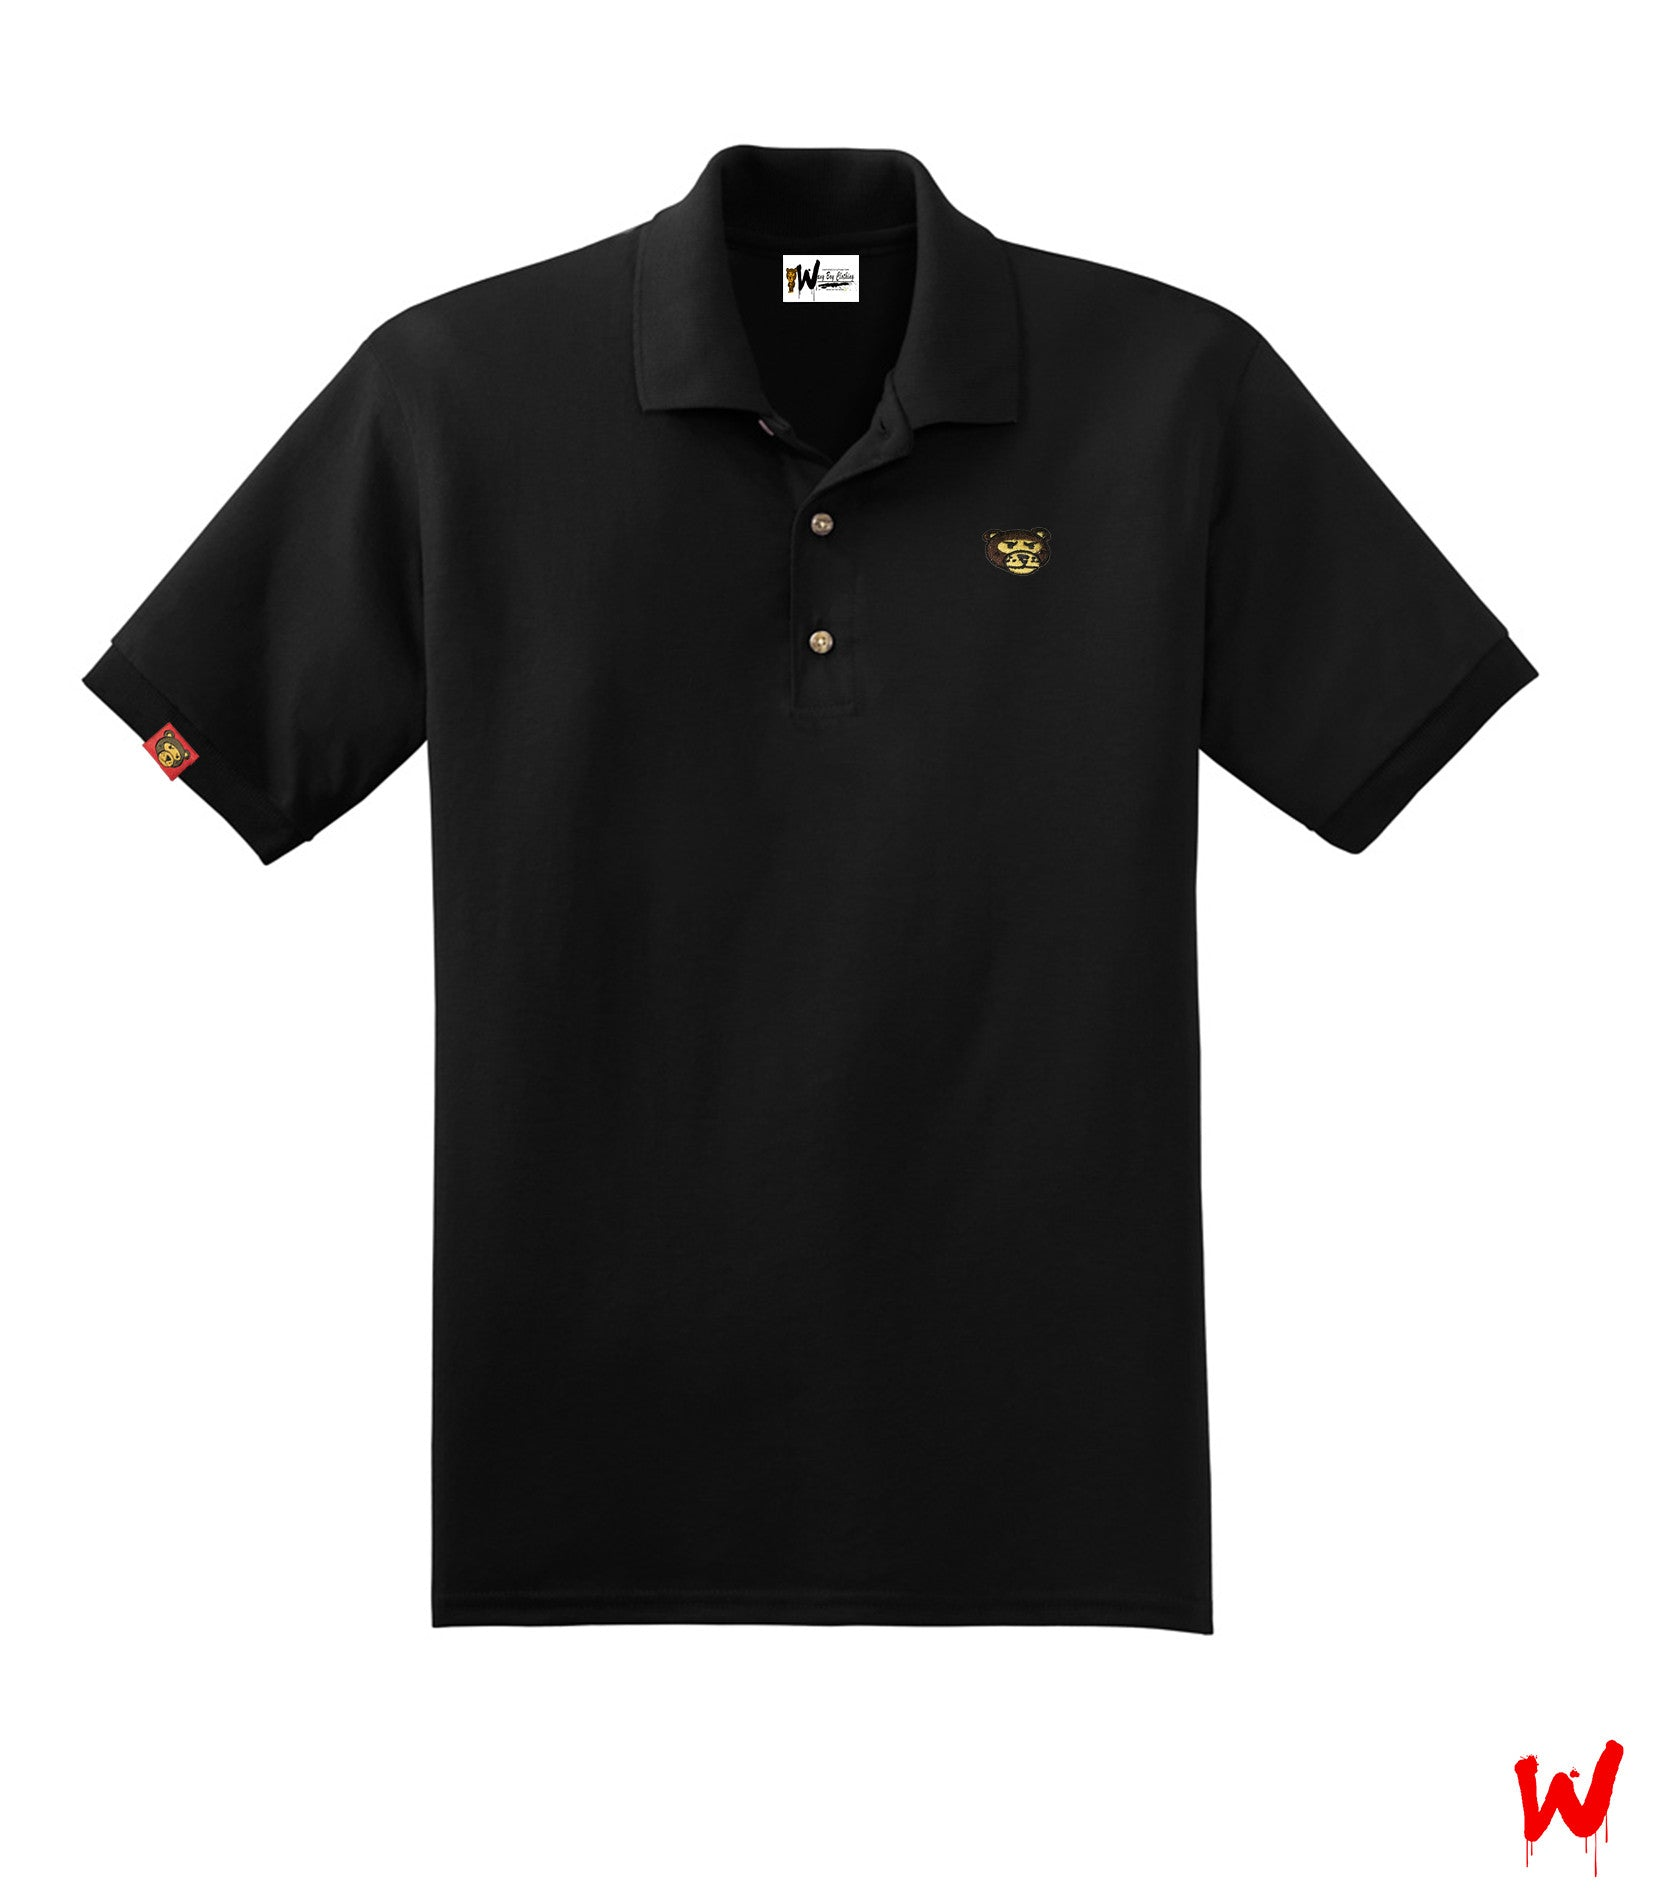 "Wavy Boy "" Bear Head"" polo - Wavy Boy Clothing"